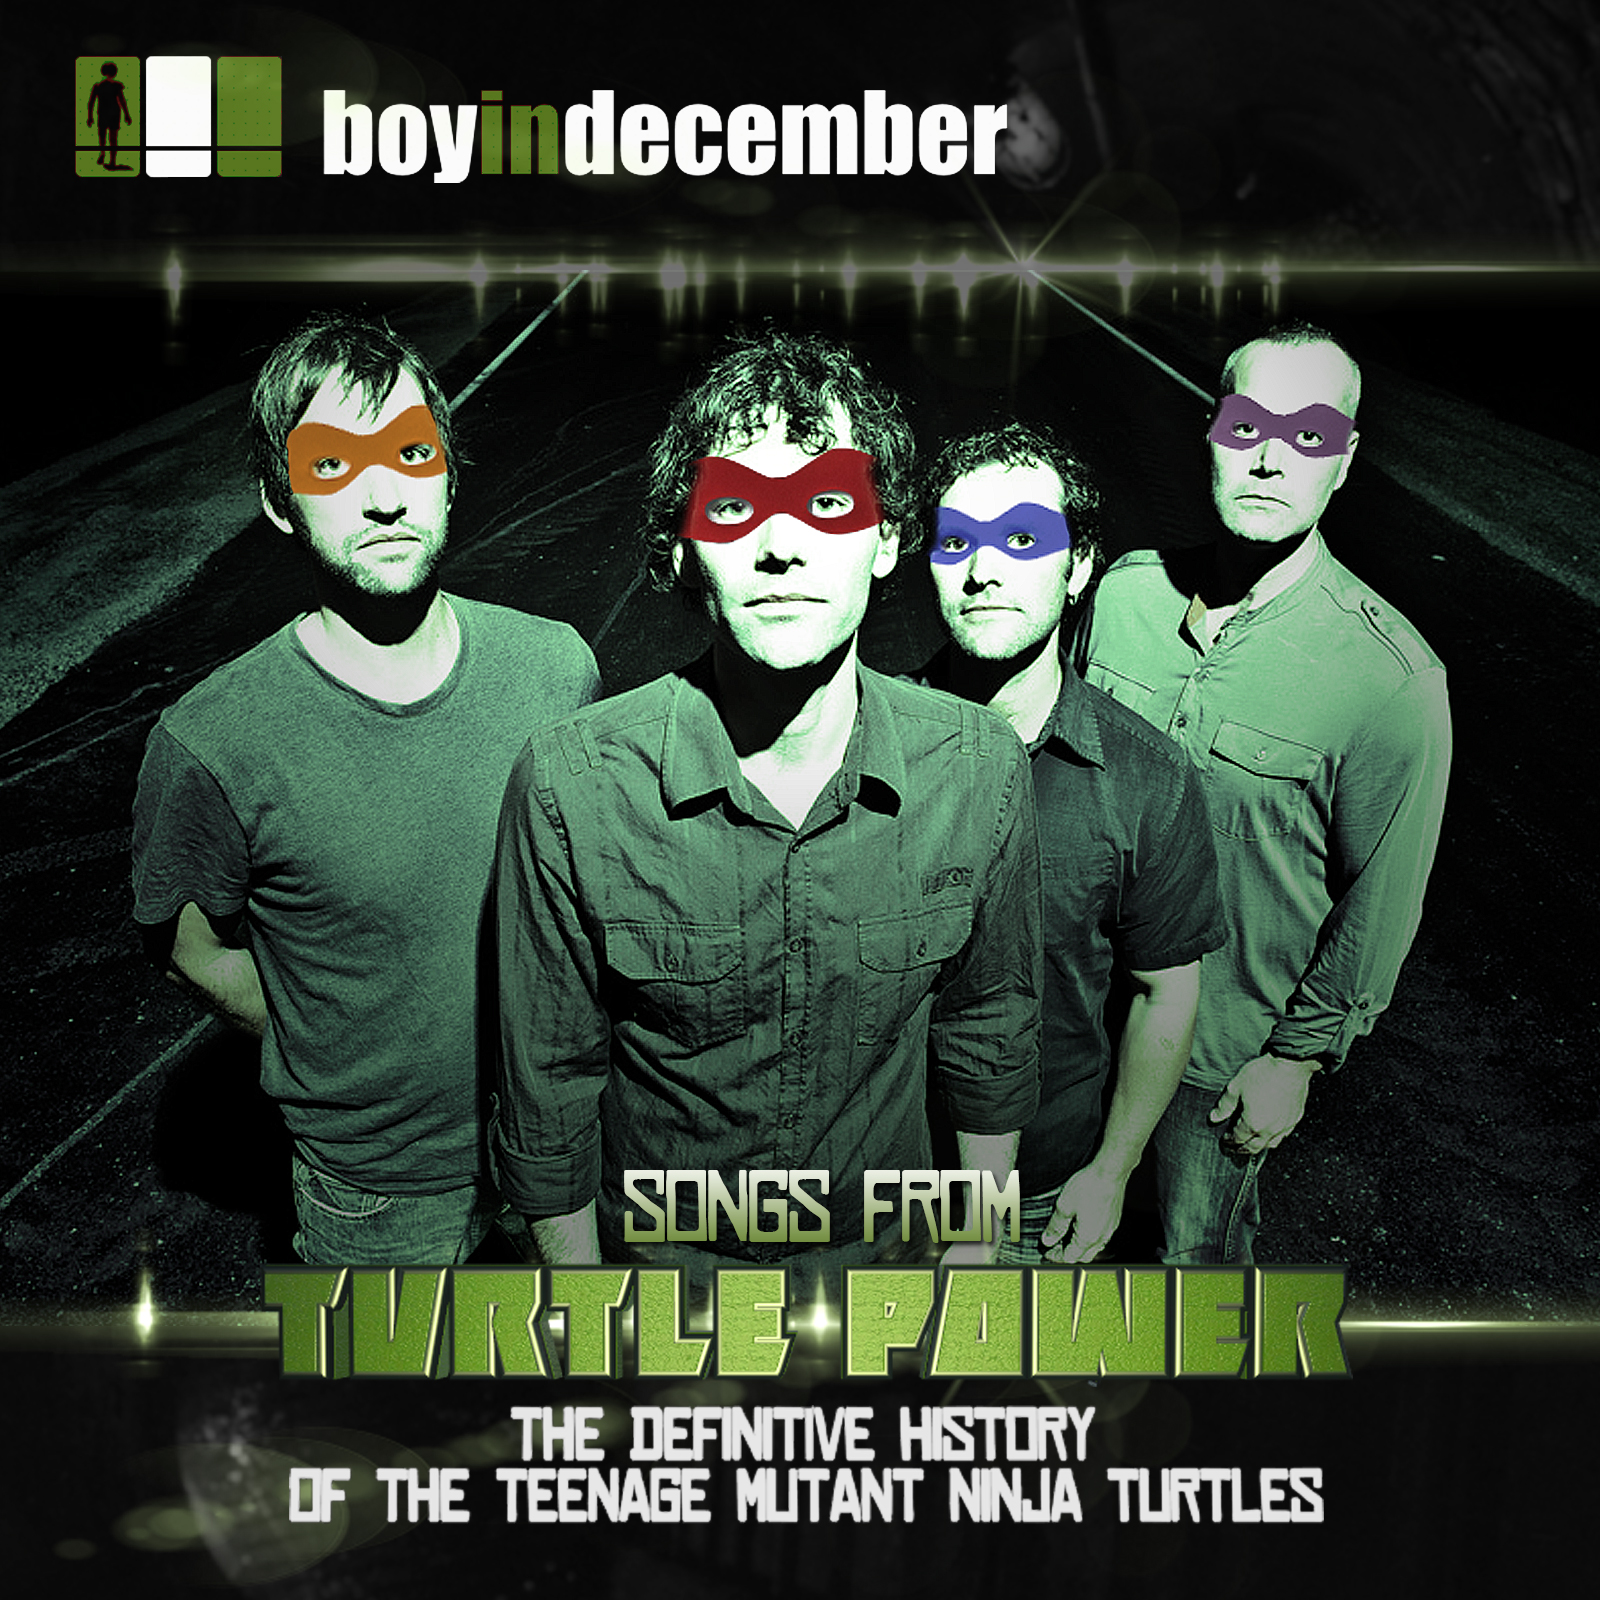 Boy In December songs from Turtle Power